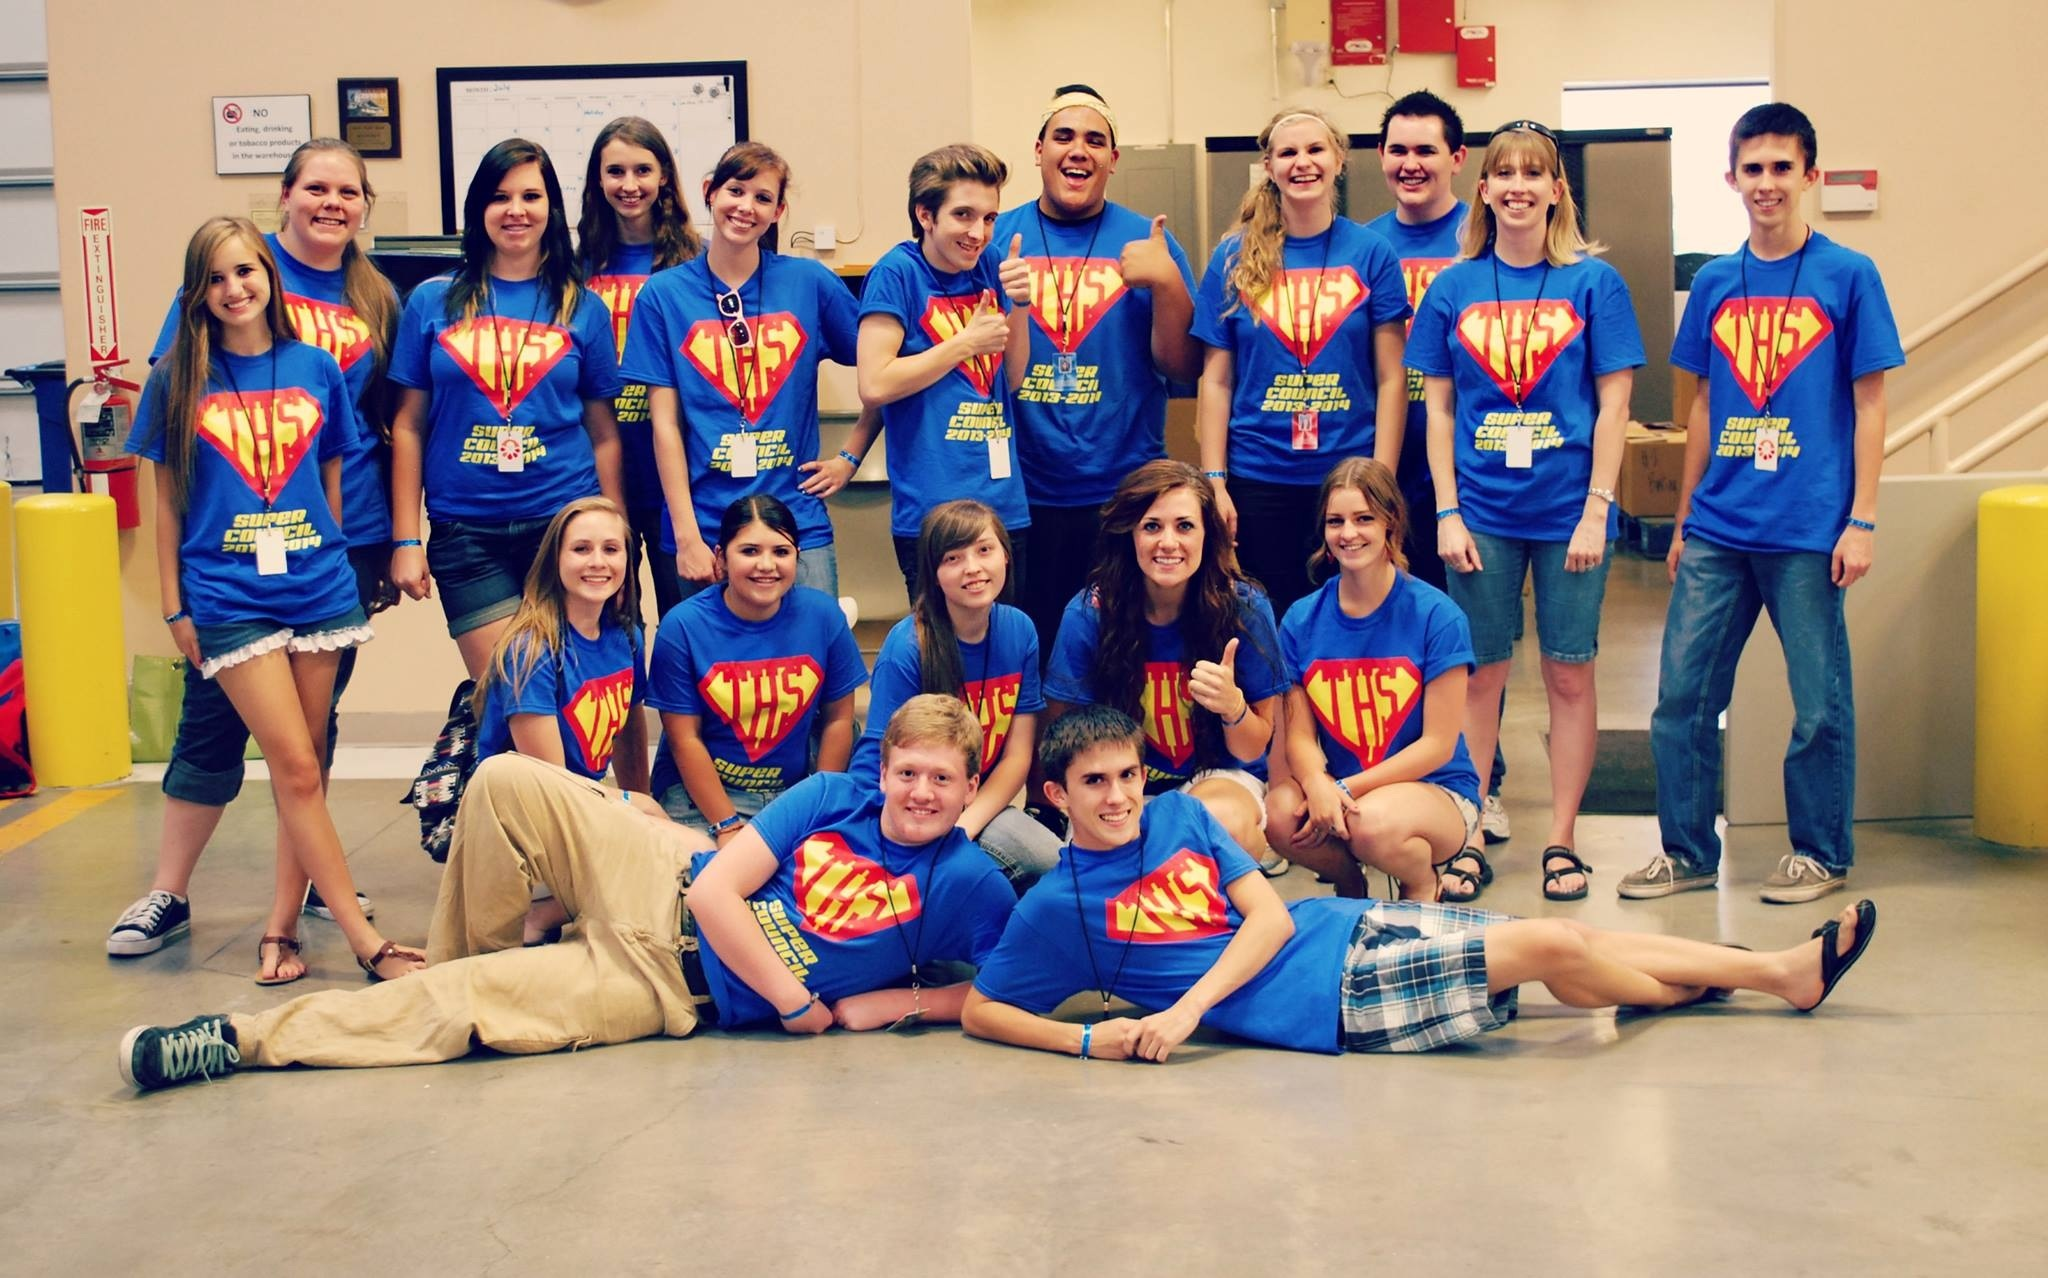 Custom T-Shirts for Leadership Camp Super Service - Shirt Design Ideas